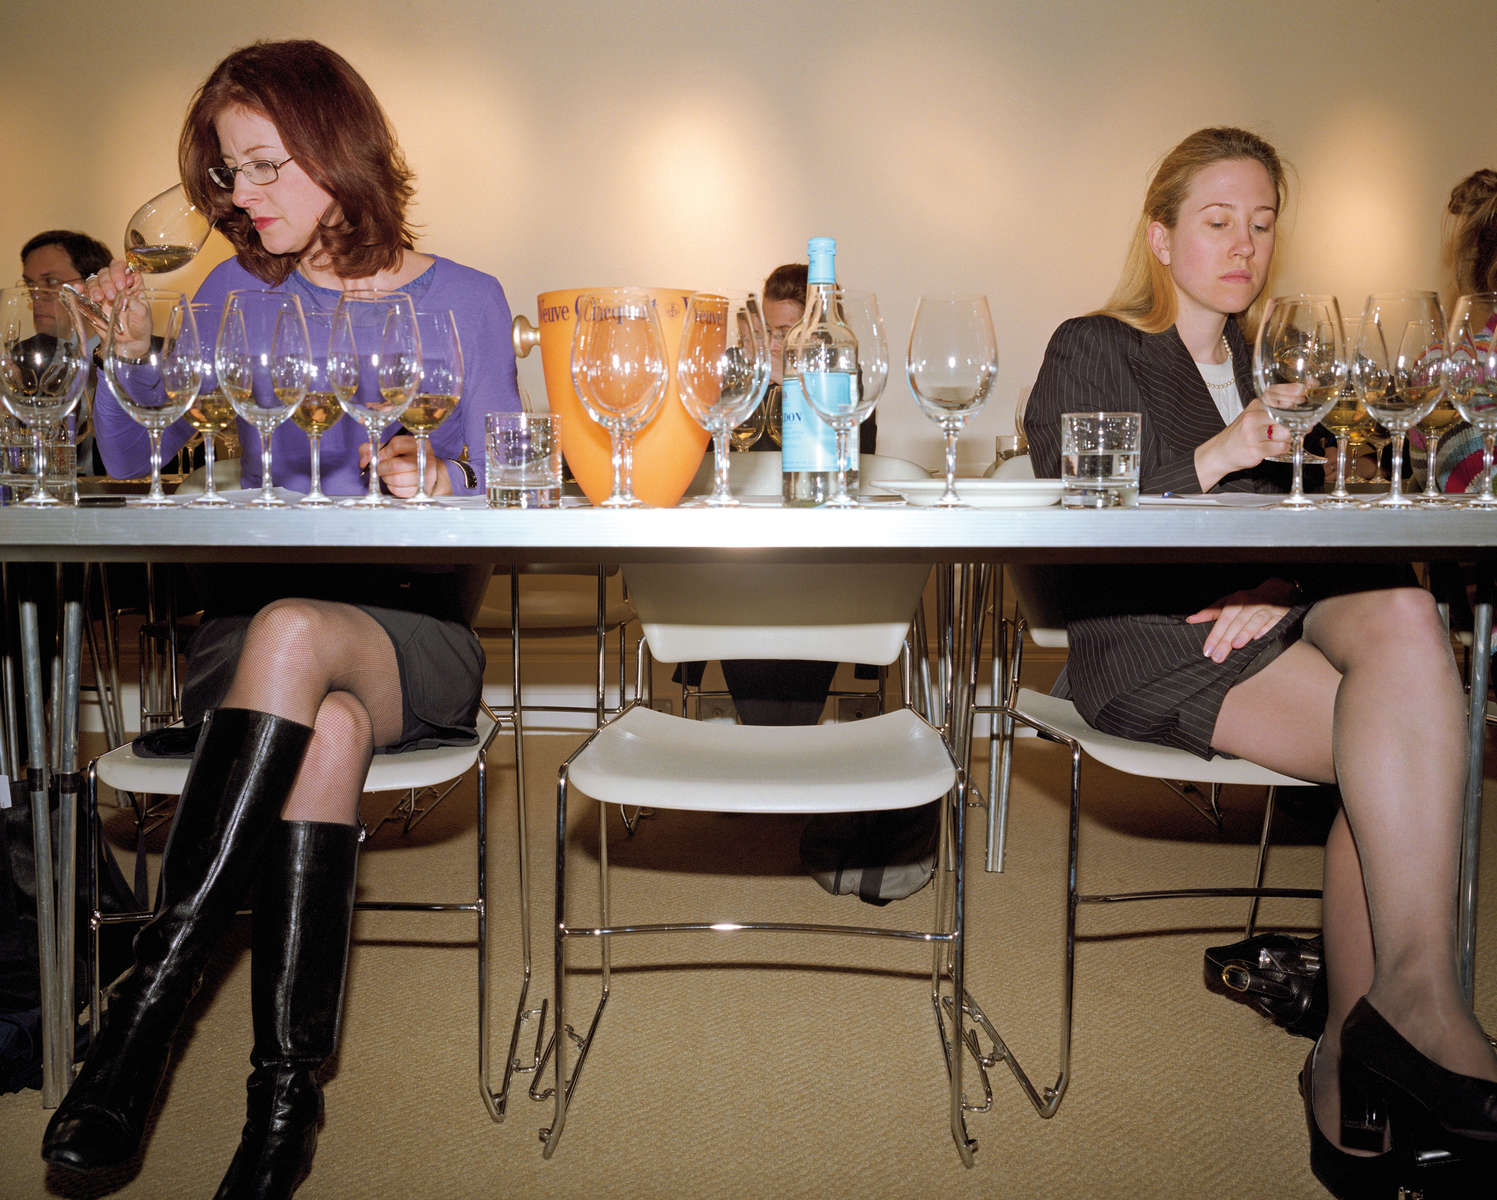 A wine-tasting class in central London organised by auction house Sotheby's. February 2001